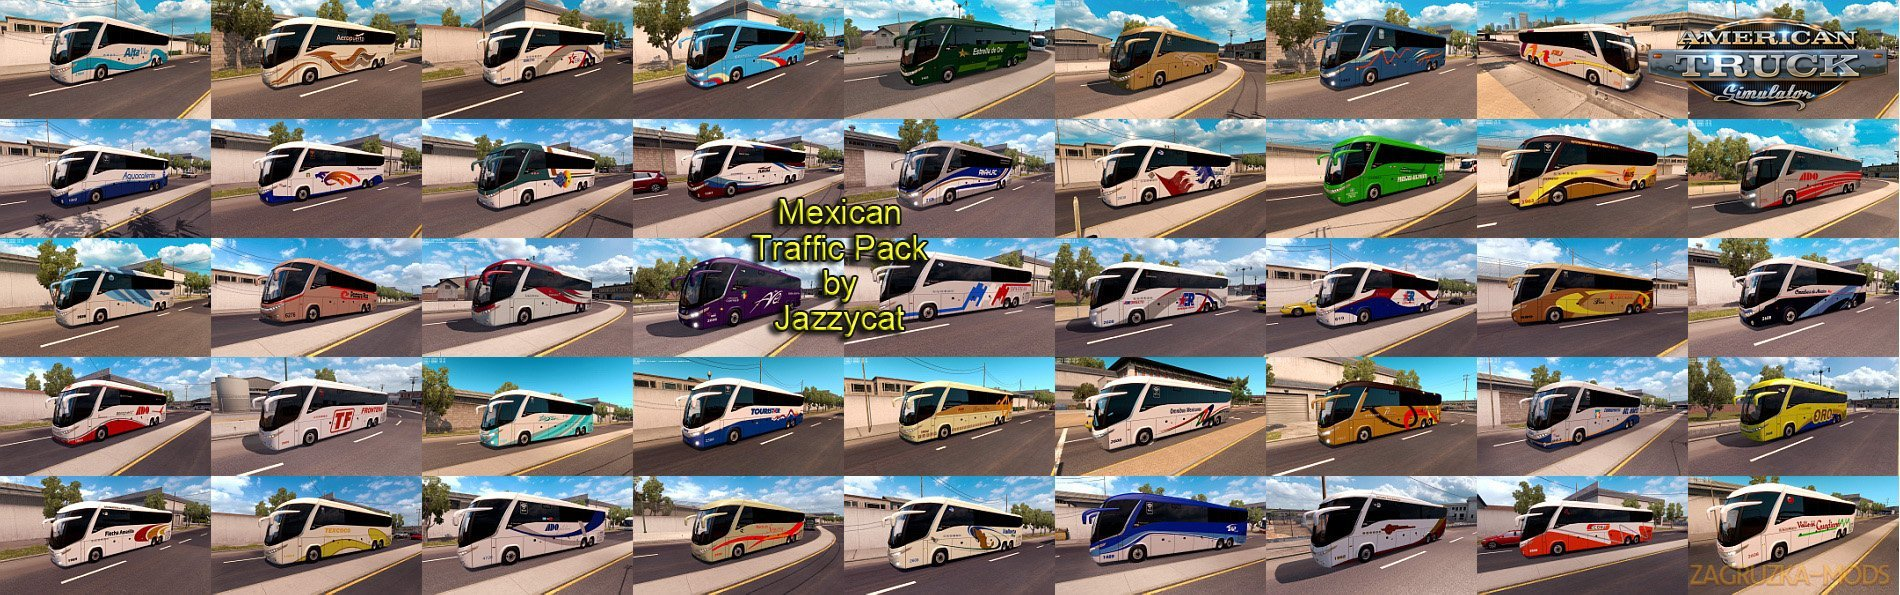 Mexican Traffic Pack v1.3 by Jazzycat (v1.6.x) for ATS